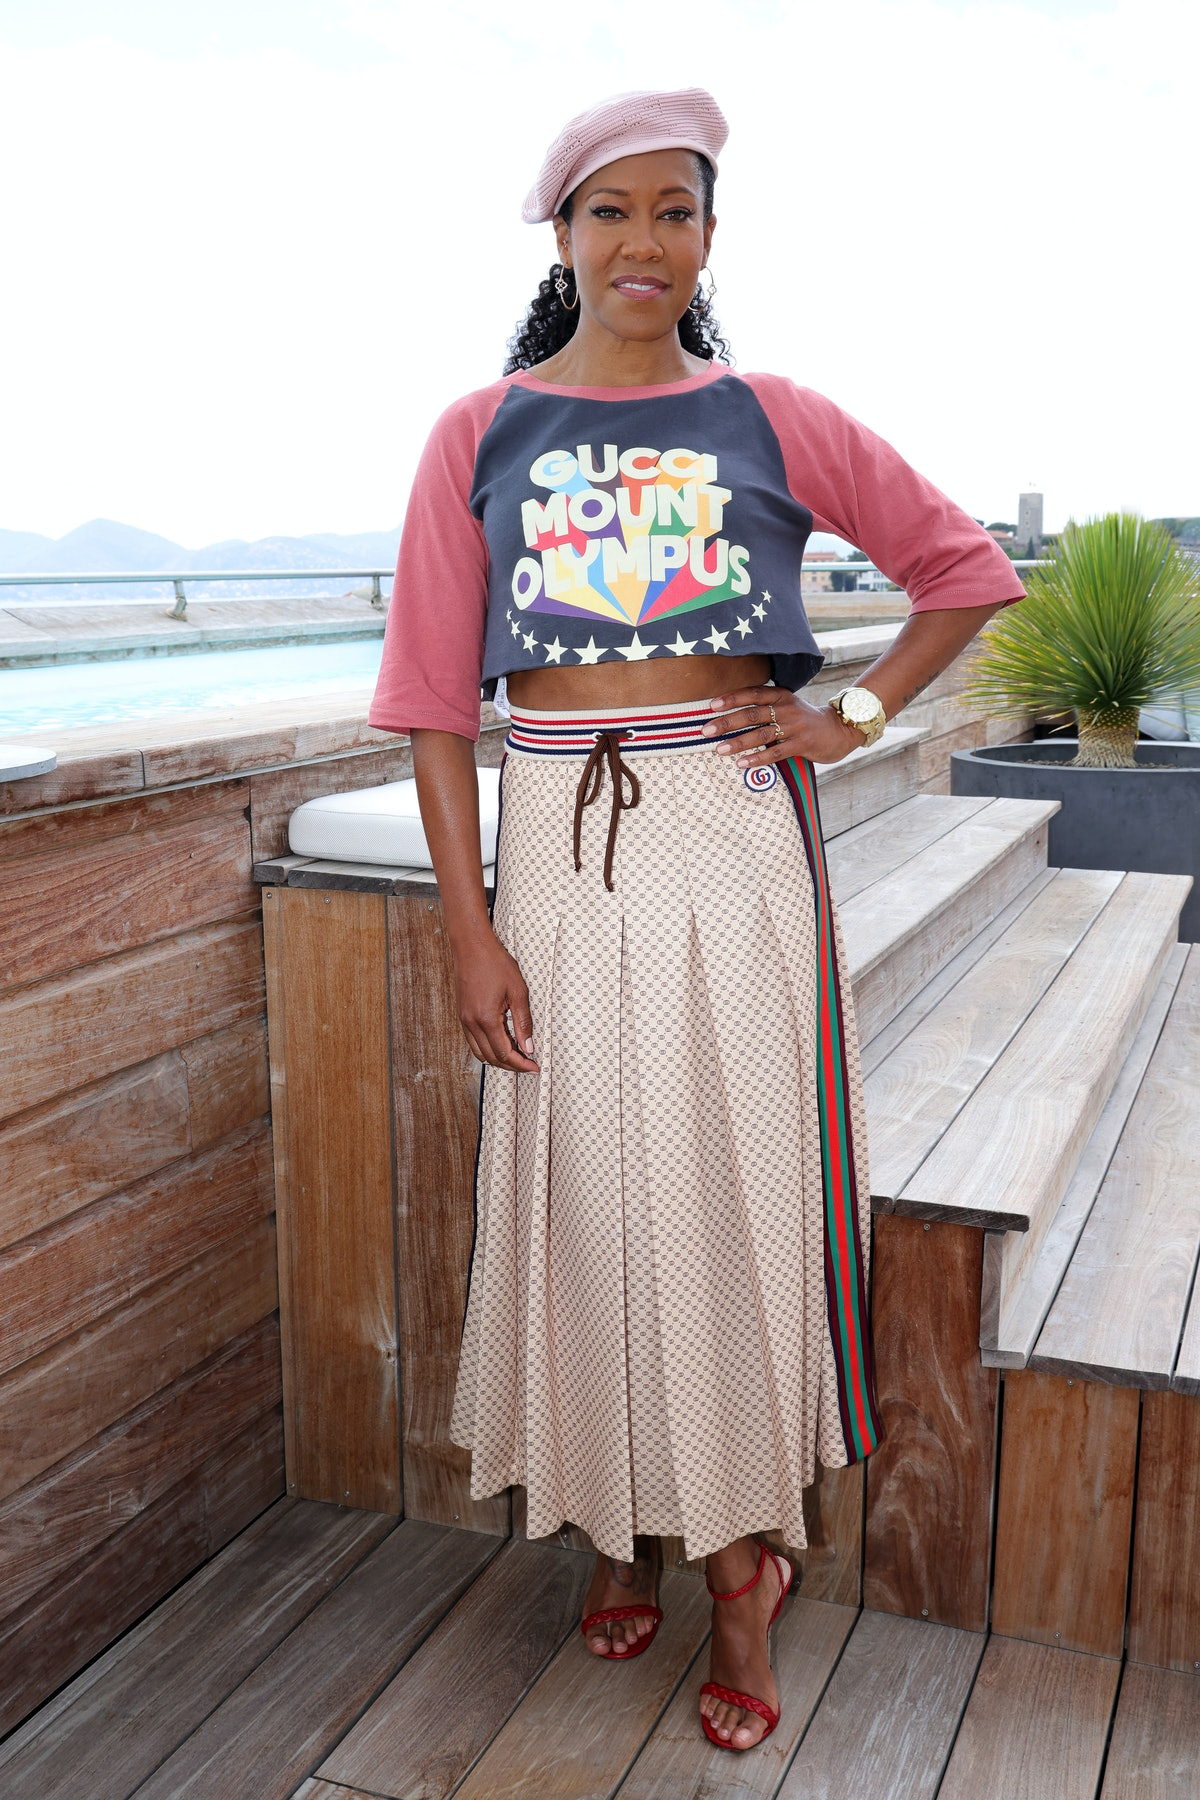 CANNES, FRANCE - JULY 16:  Regina King attends Kering Women In Motion Talk during The 74th Annual Cannes Film Festival on July 16, 2021 in Cannes, France. (Photo by Vittorio Zunino Celotto/Getty Images )